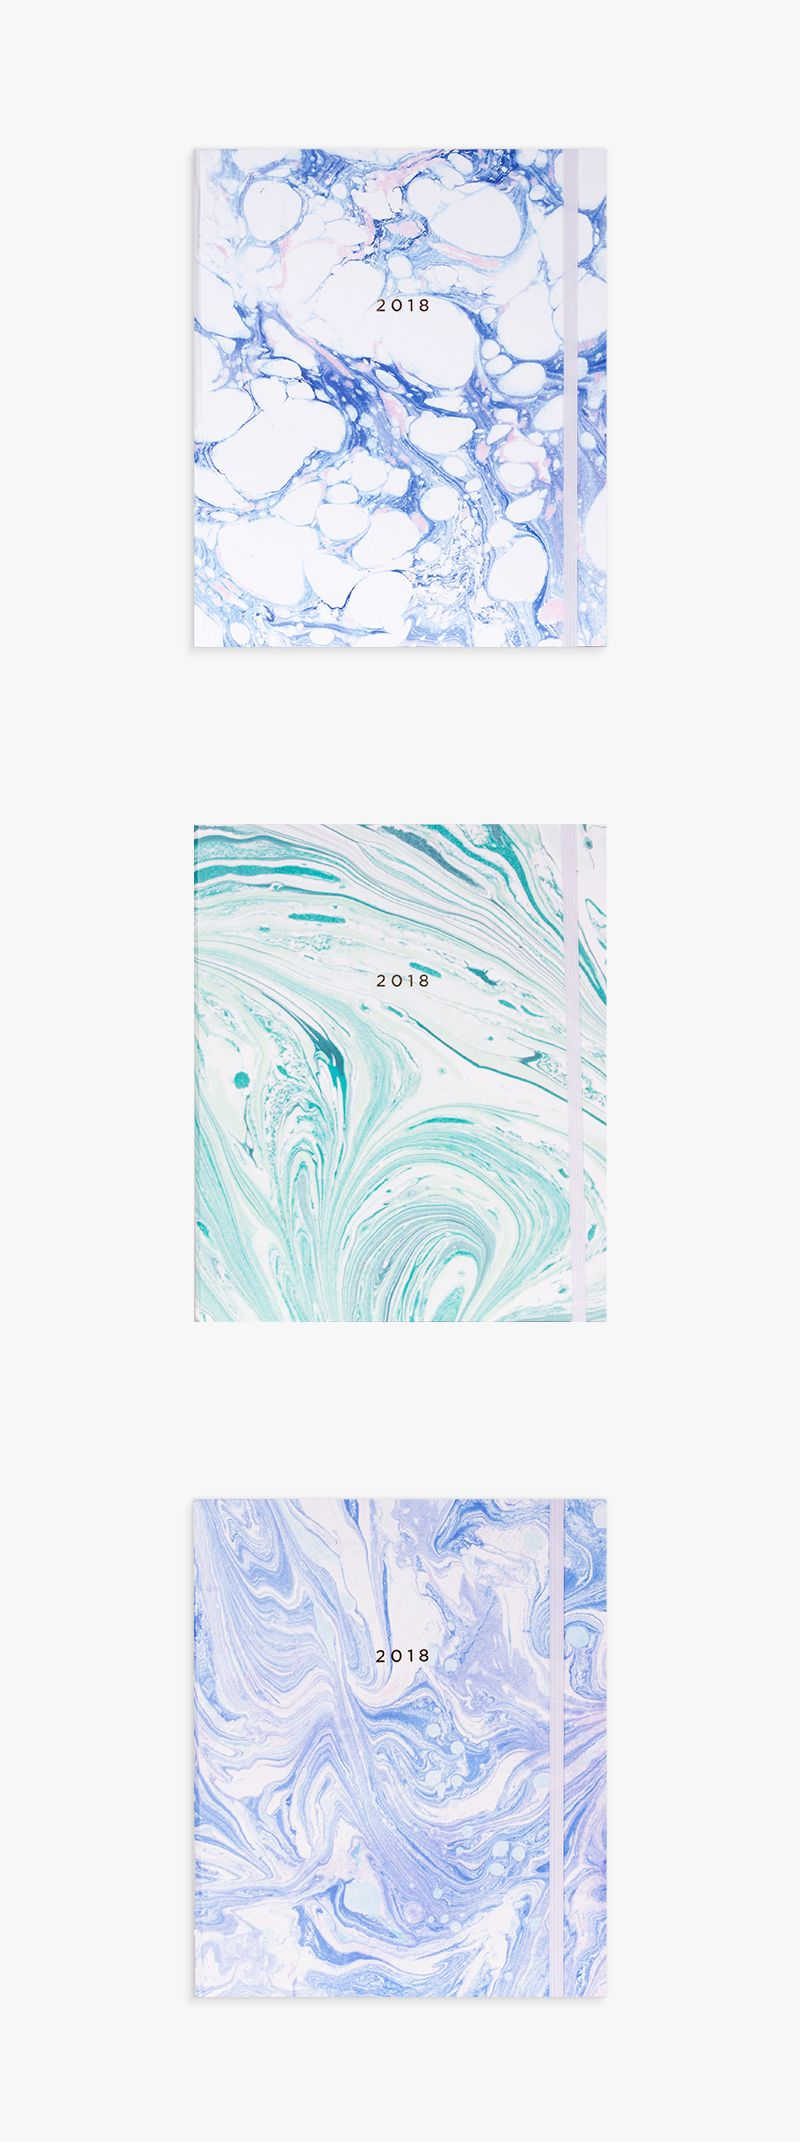 Wedding decorations accessories december 2018 m marble planner blue moon sold out  Weekly planner Blue moon